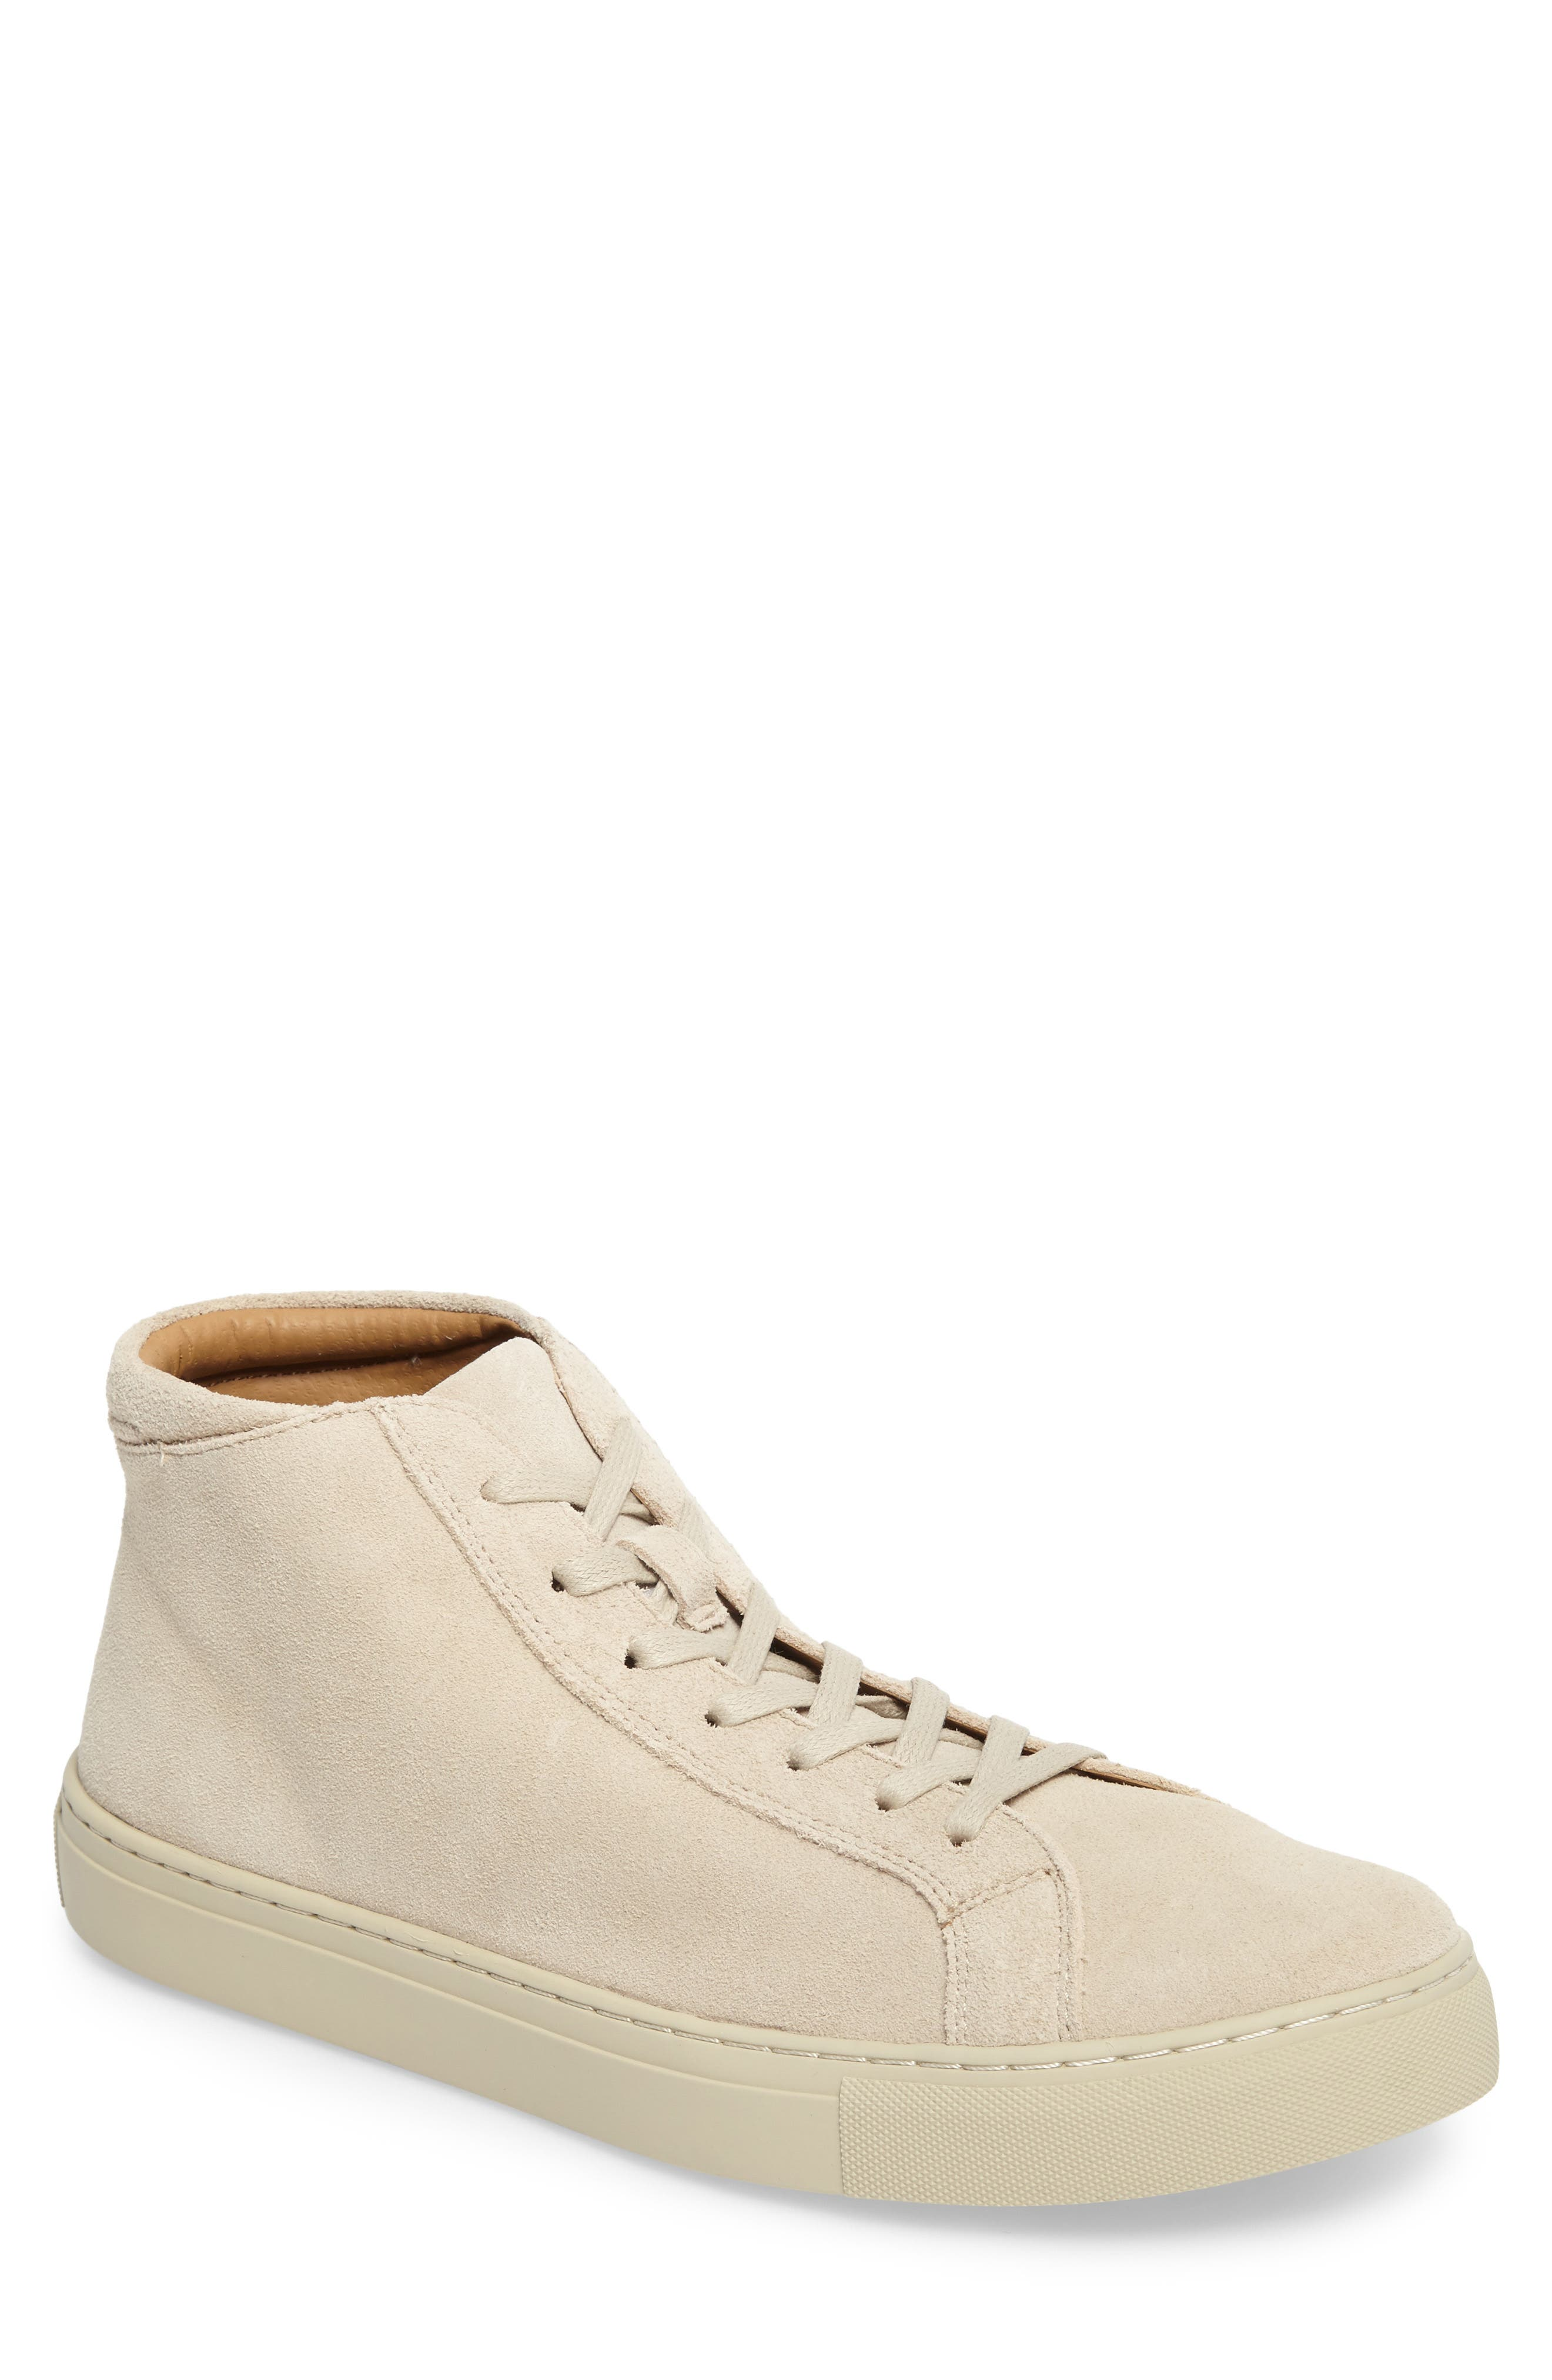 Kenneth Cole Reaction Mid Sneaker,                             Main thumbnail 1, color,                             292